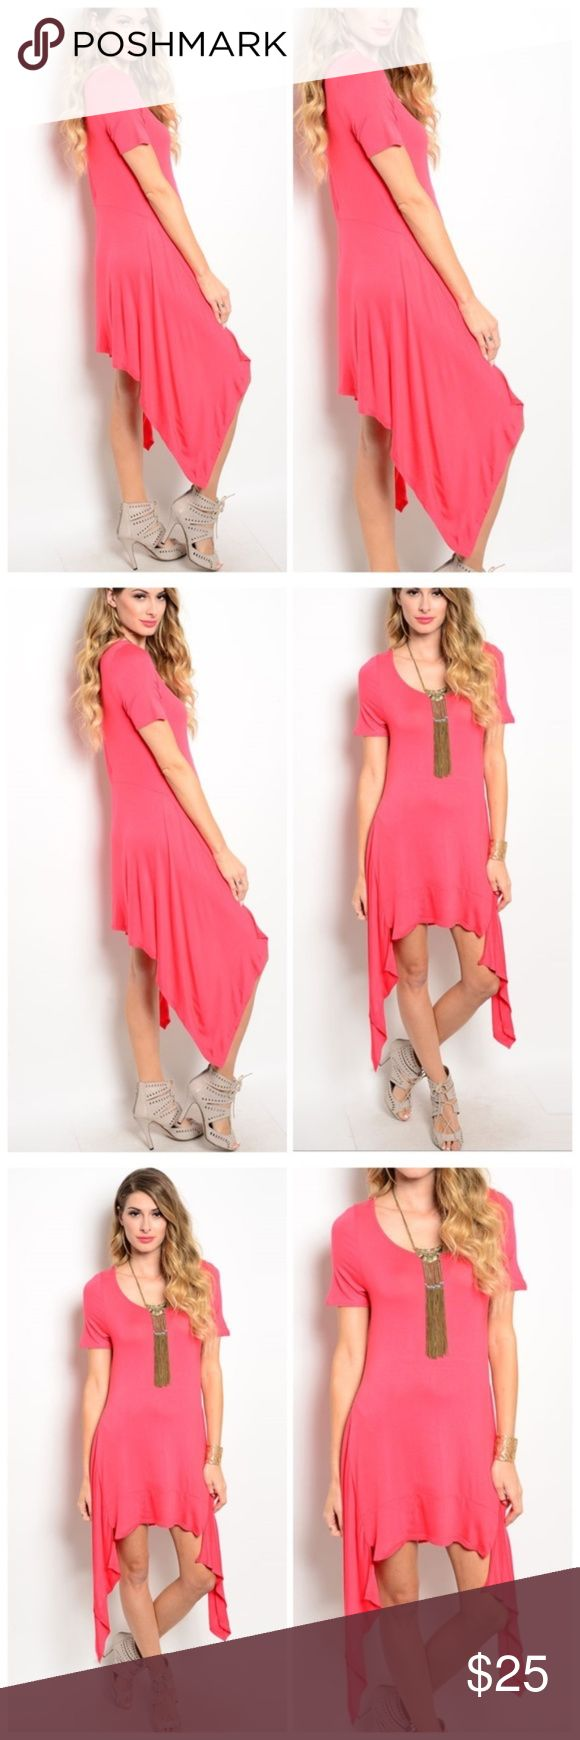 Women's Candice Bright Pink Short Sleeve Jersey Dr This short sleeve lightweight knit jersey dress features a relaxed fit and asymmetrical hemline. You are sure to standout and shine bright in this vibrant hue of pink! Extra soft and lightweight knit fabric made of 65%rayon and 35% viscose made this an easy choice for the spring and summer. This dr we fits true to size and has a nice gentle stretch. Pair this with your favorite sandals and a long necklace for a simple femme style! A warm…